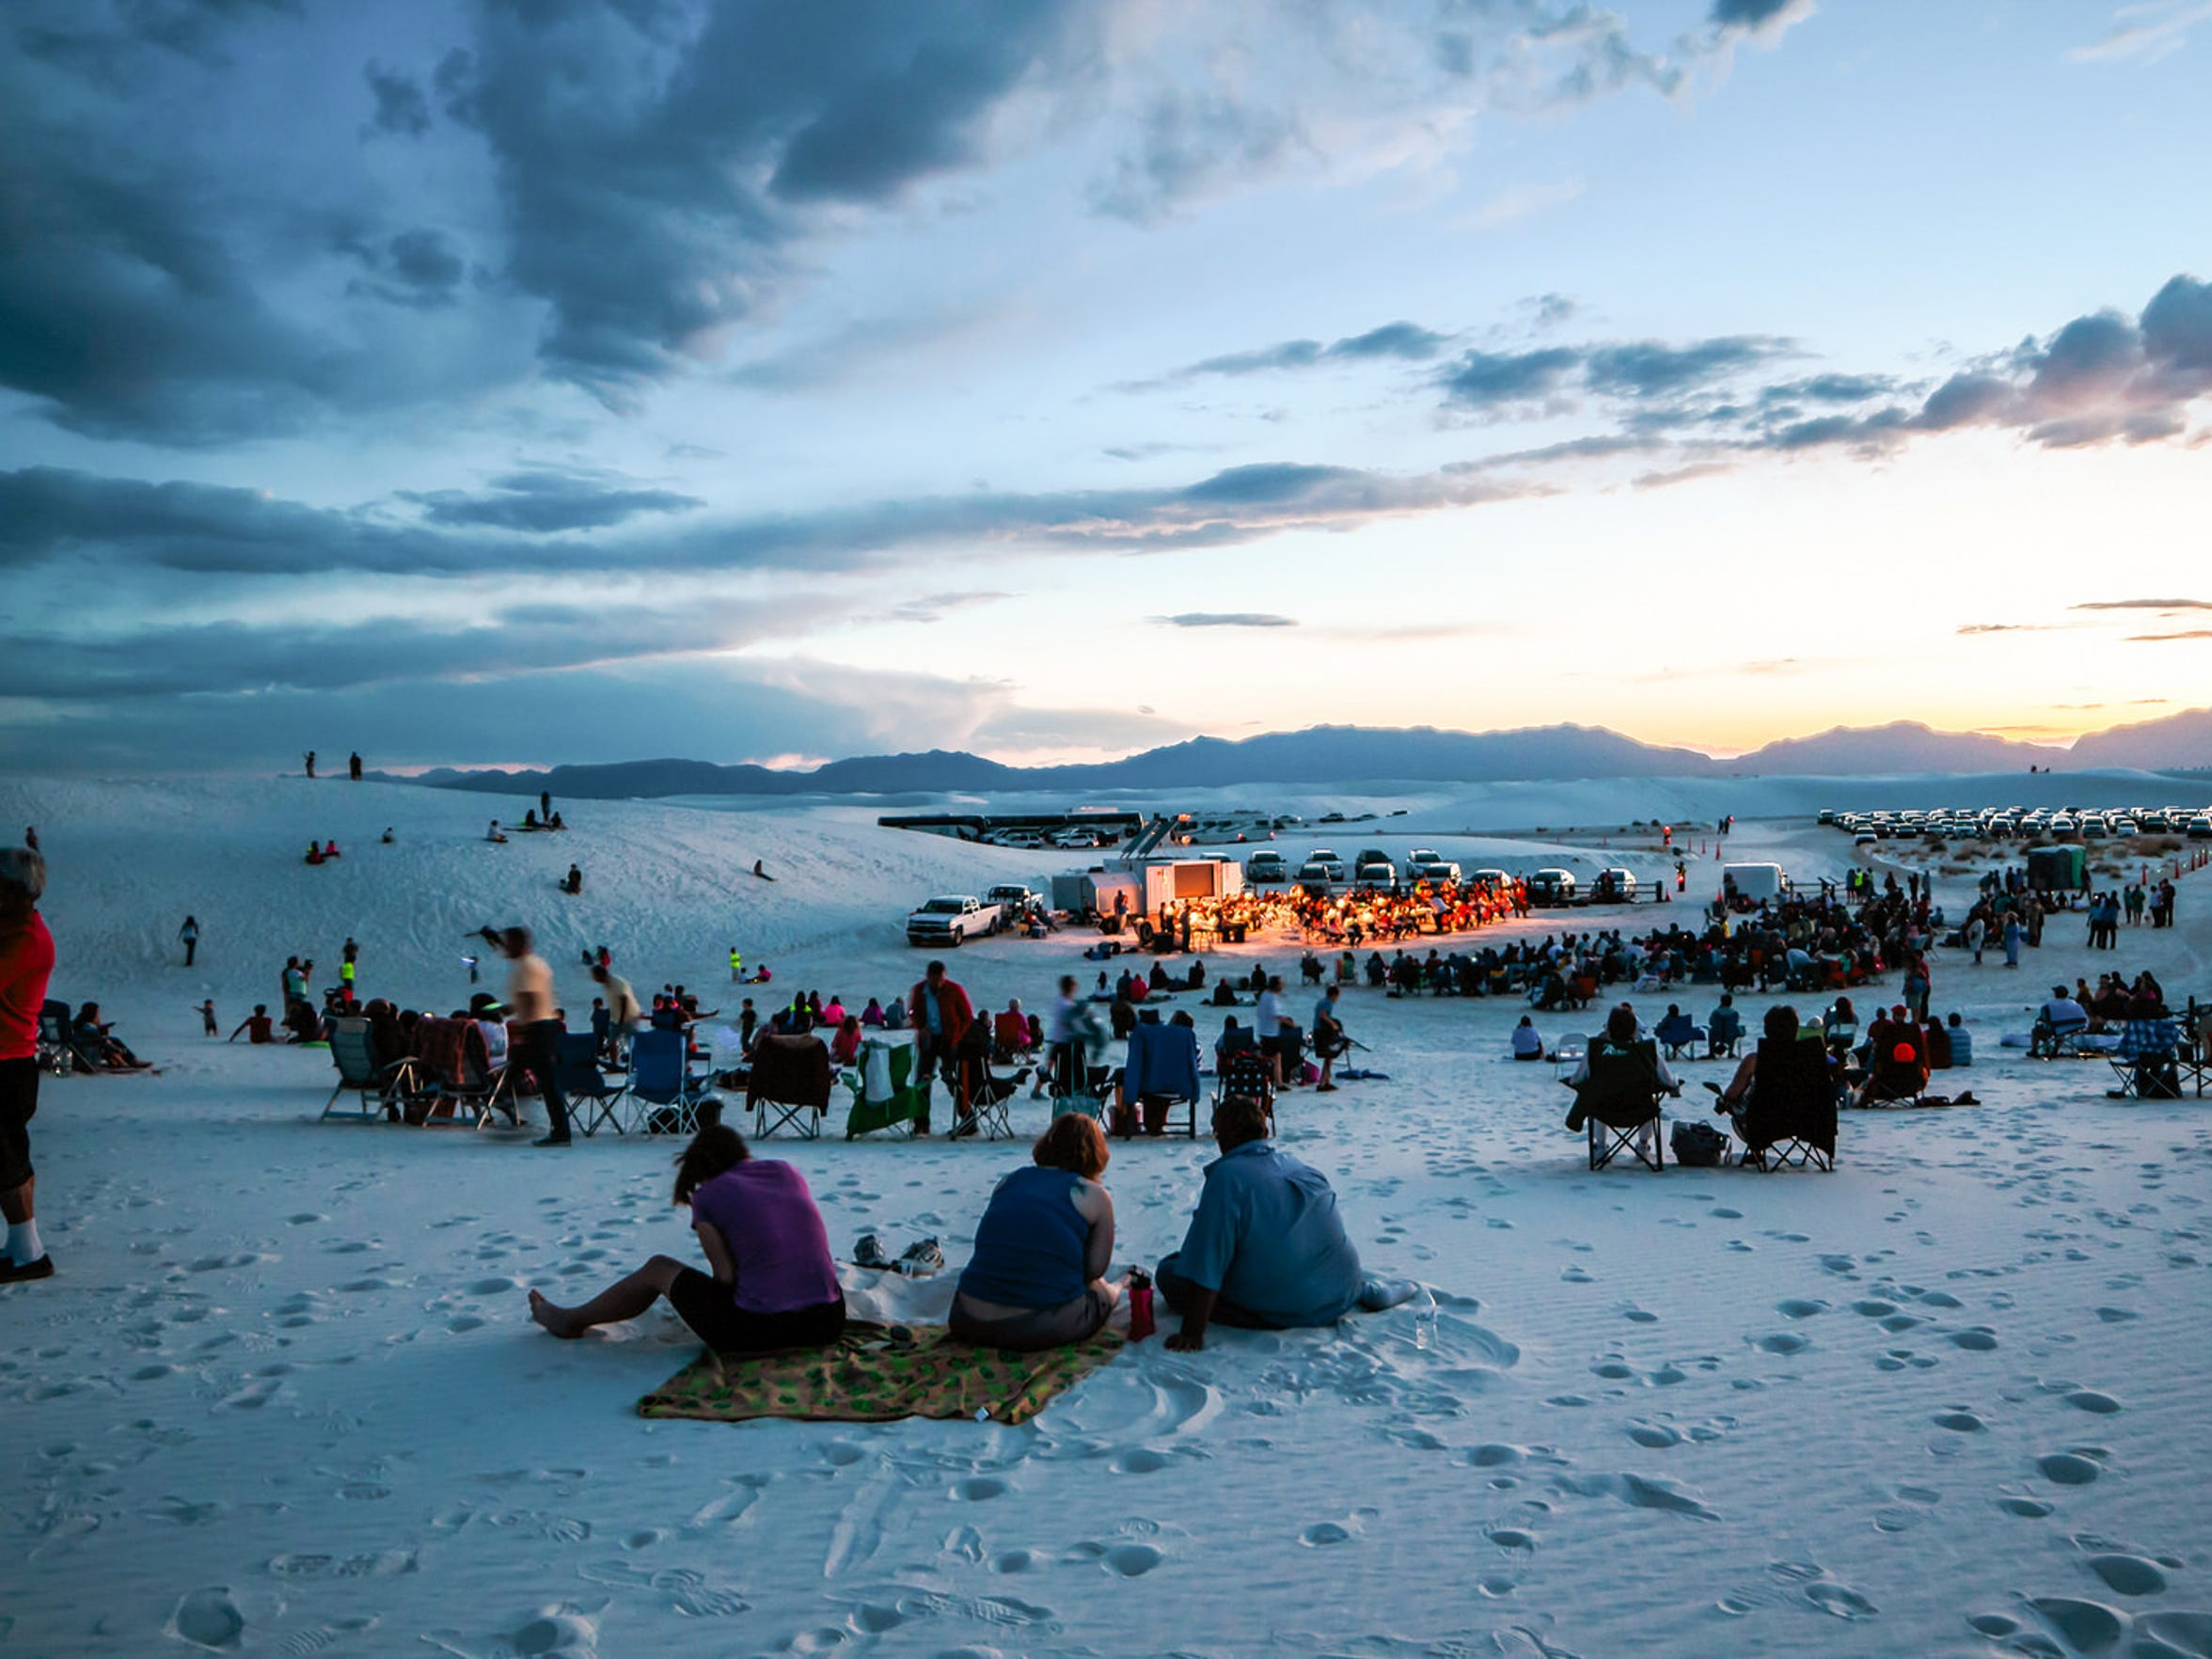 Full Moon Nights at White Sands National Monument feature